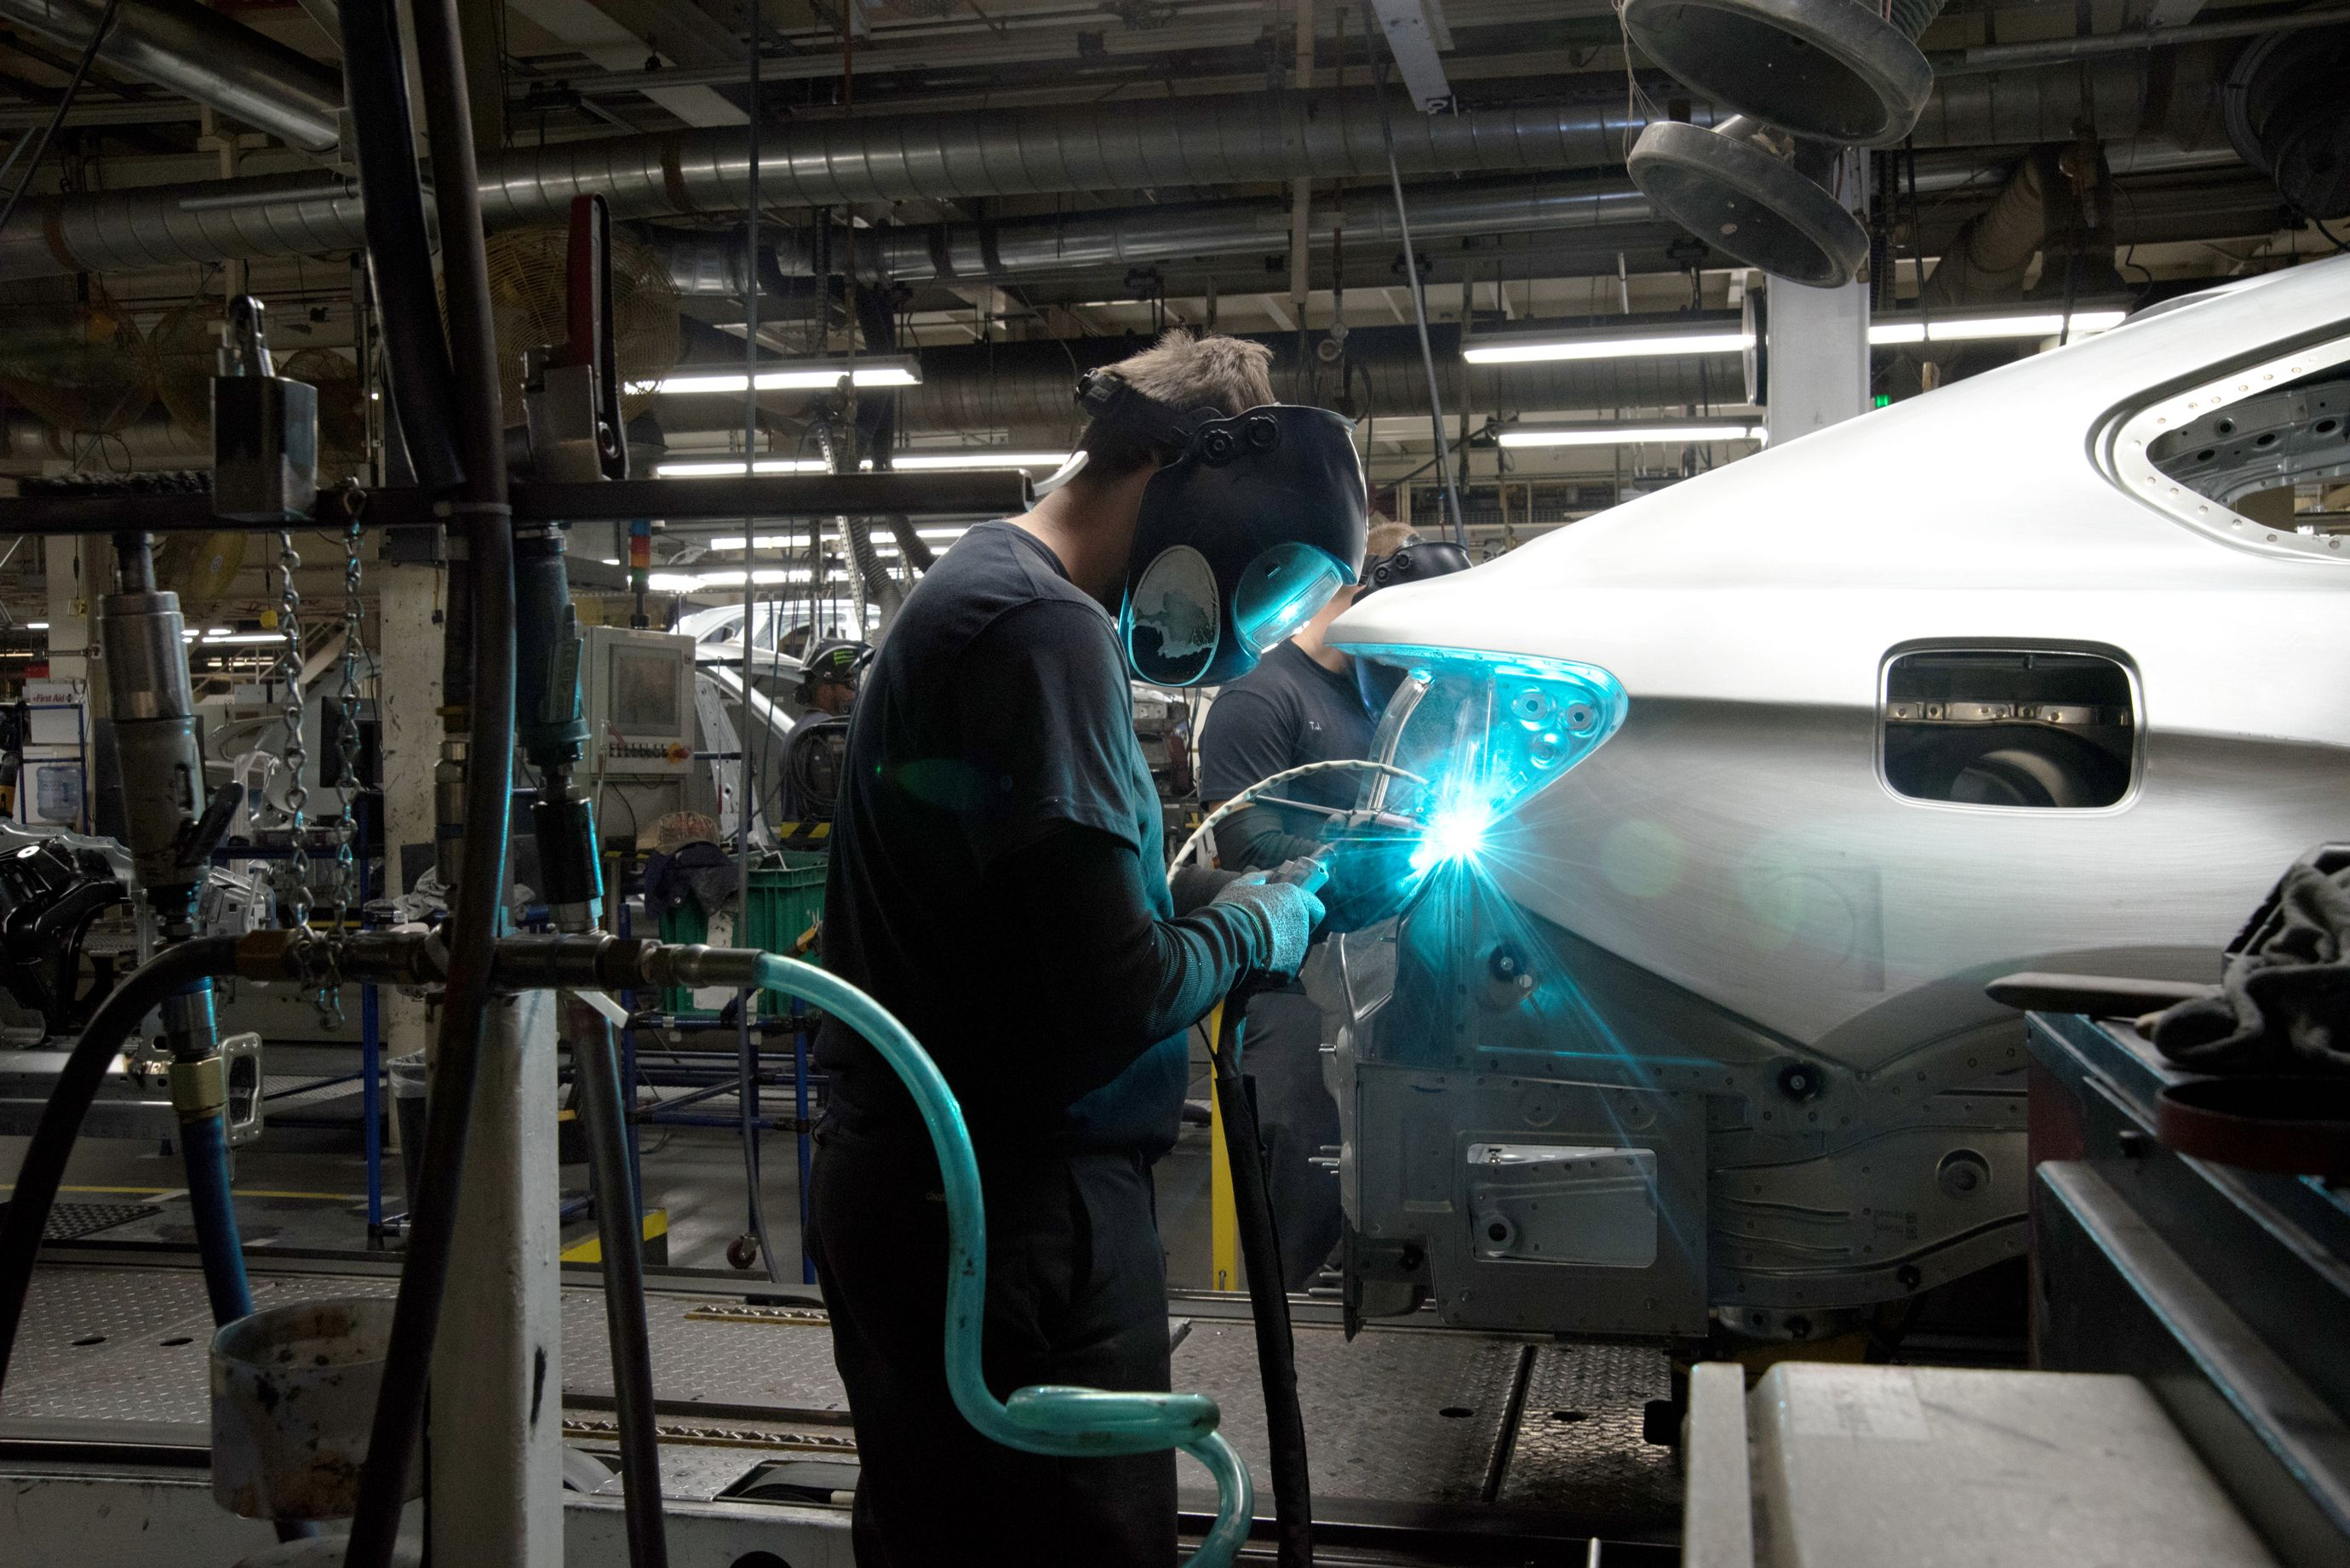 Most of the welding done in the plant's body shop is performed by robots, but certain special welds are still made by workers. (2 of 7)